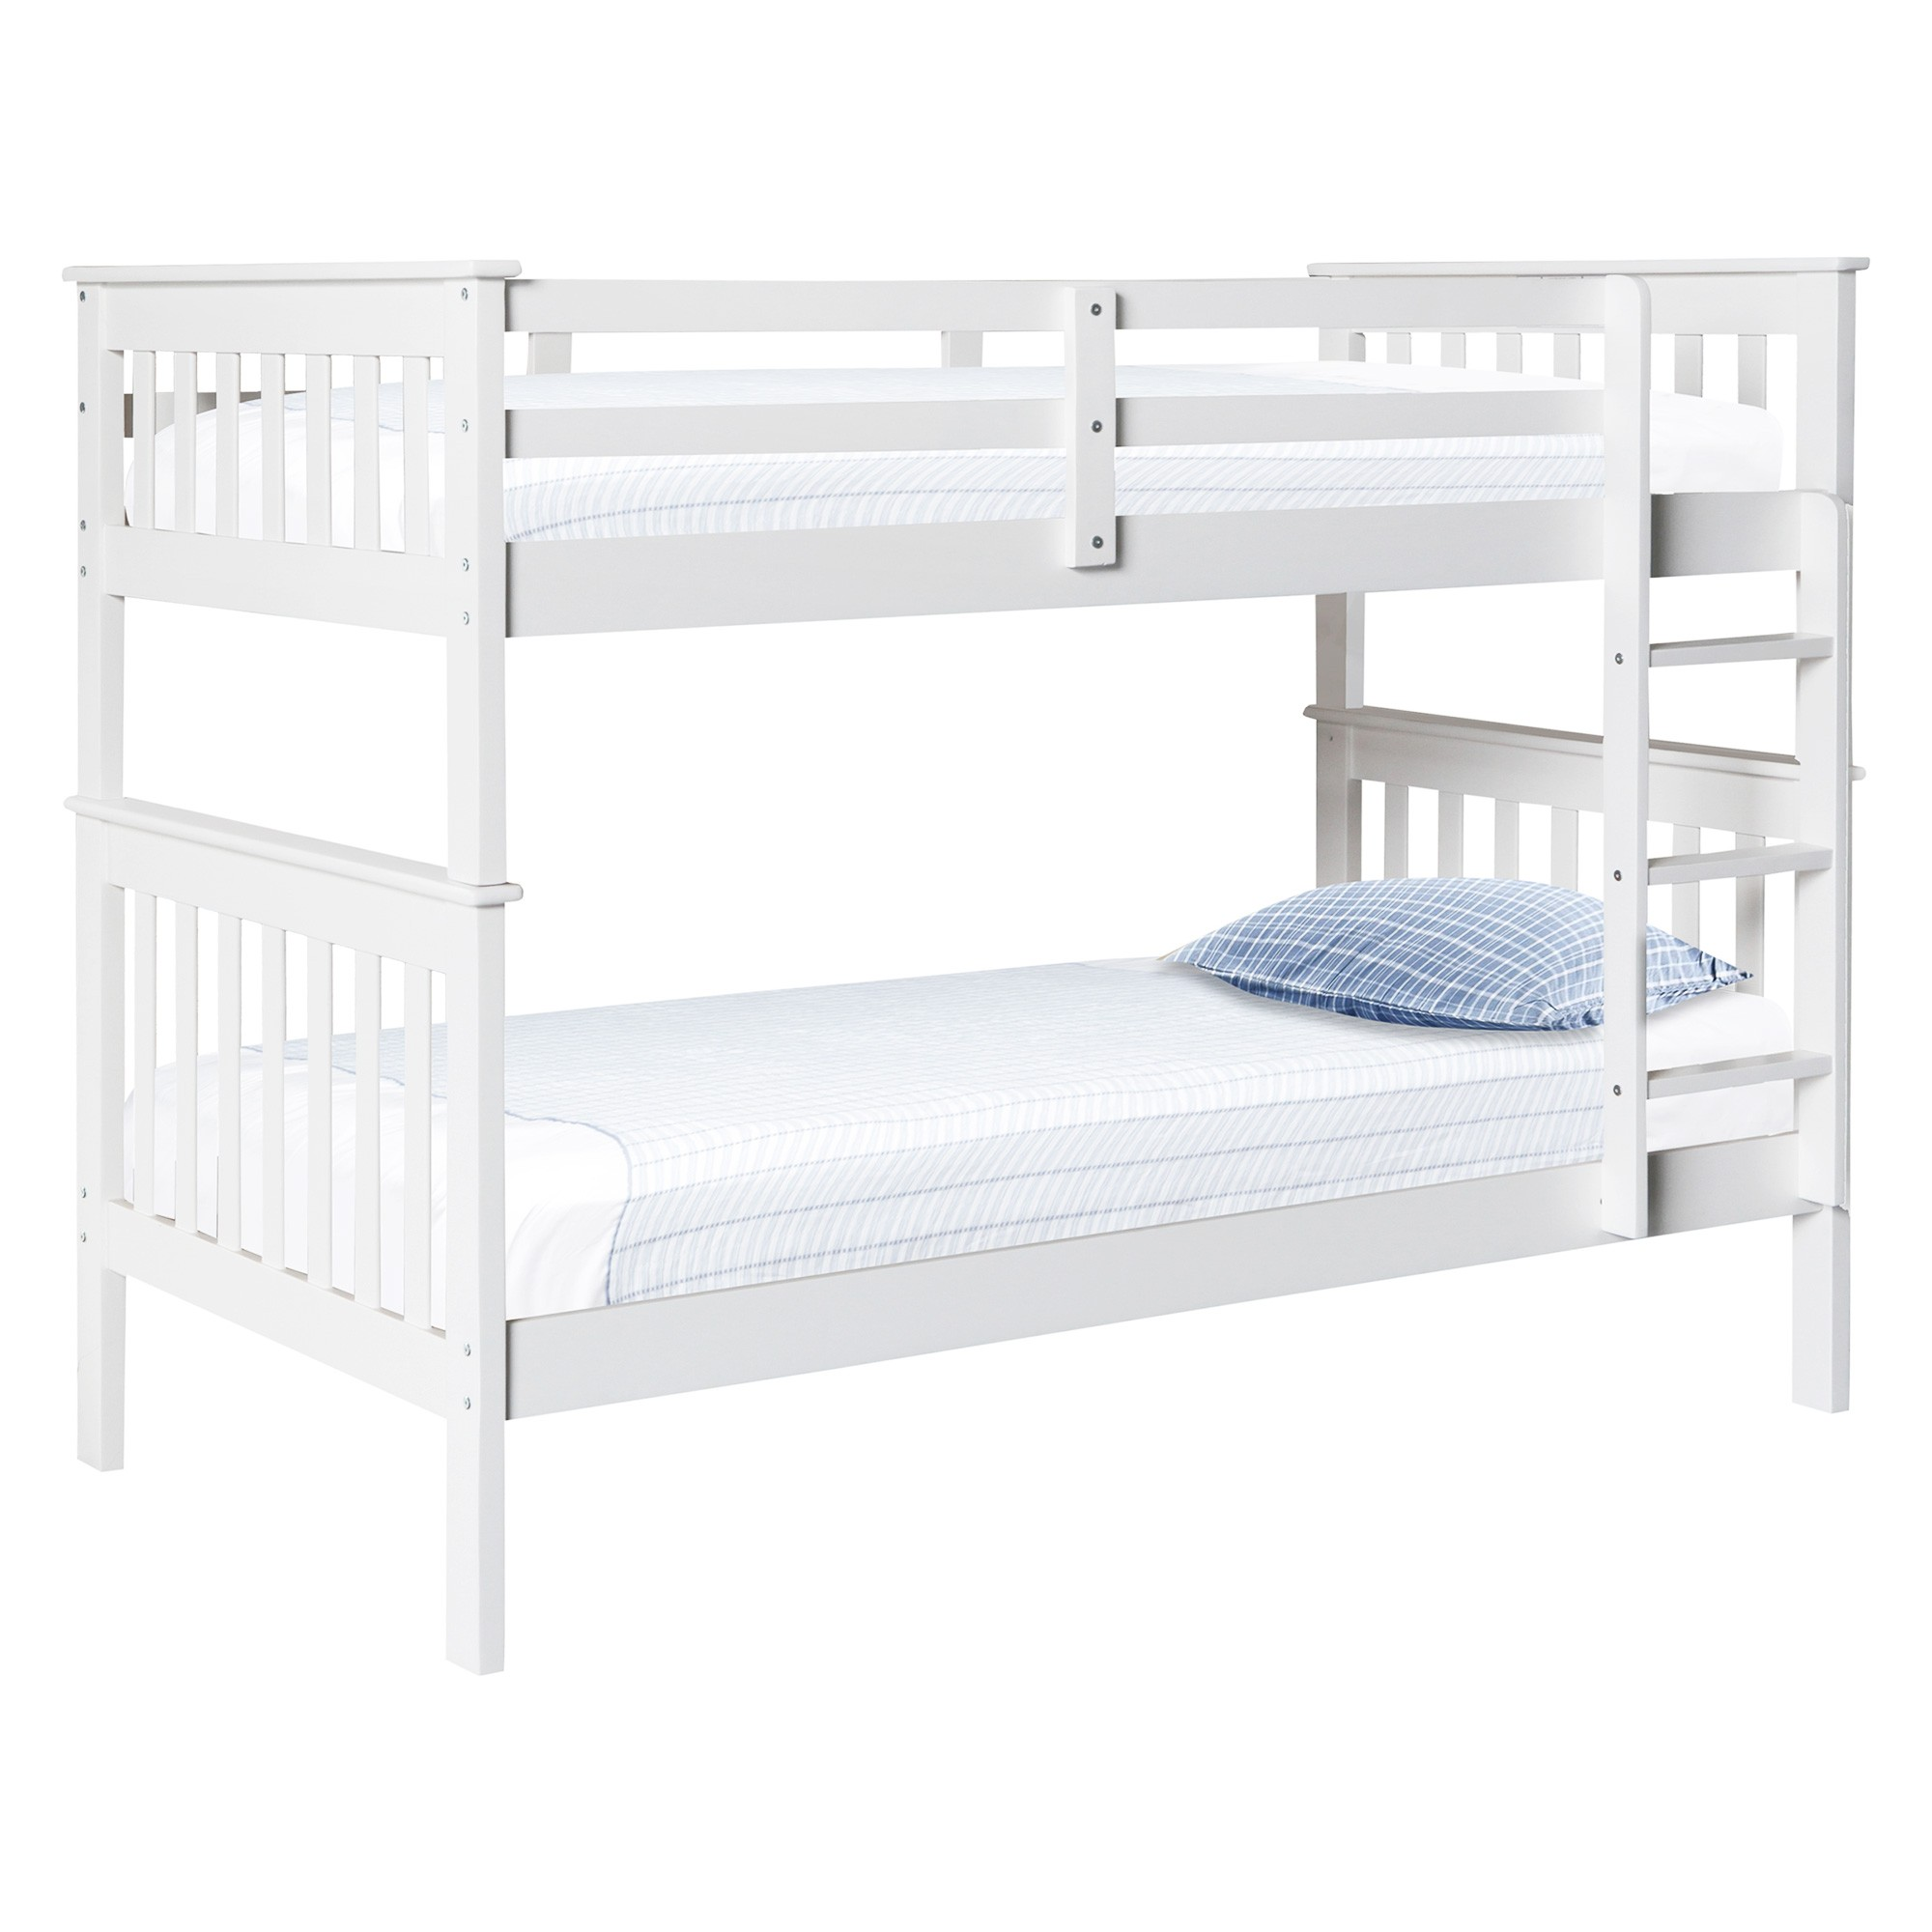 Retro Wooden Bunk Bed, Single